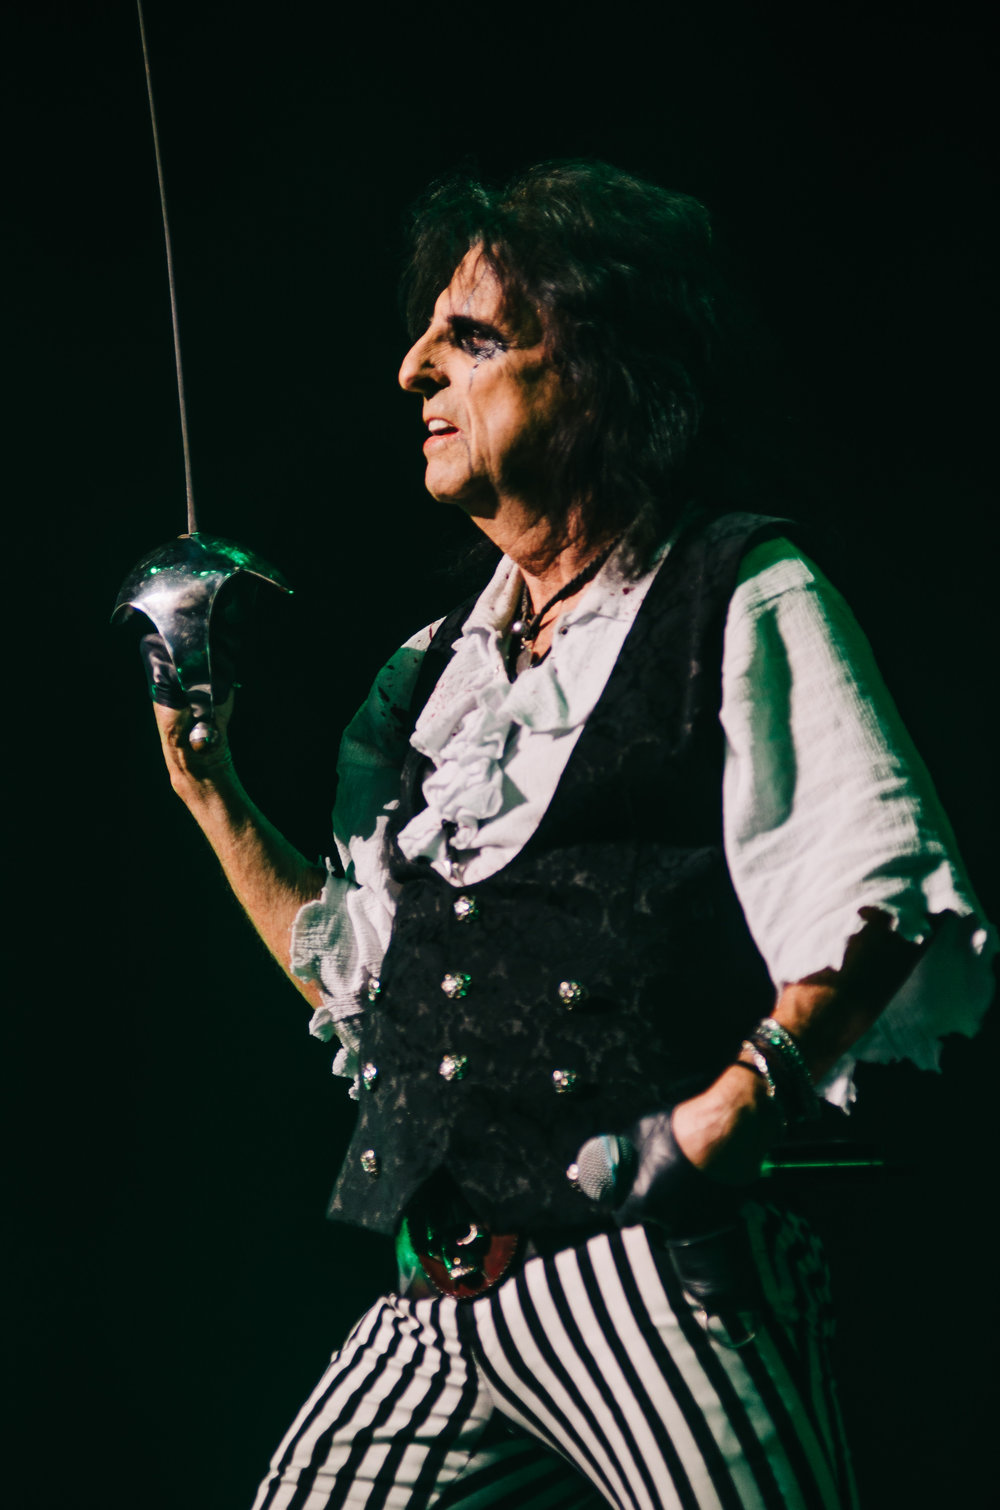 1_Alice_Cooper_Queen_Elizabeth_Theatre-Timothy_Nguyen-20161019 (32 of 36).jpg